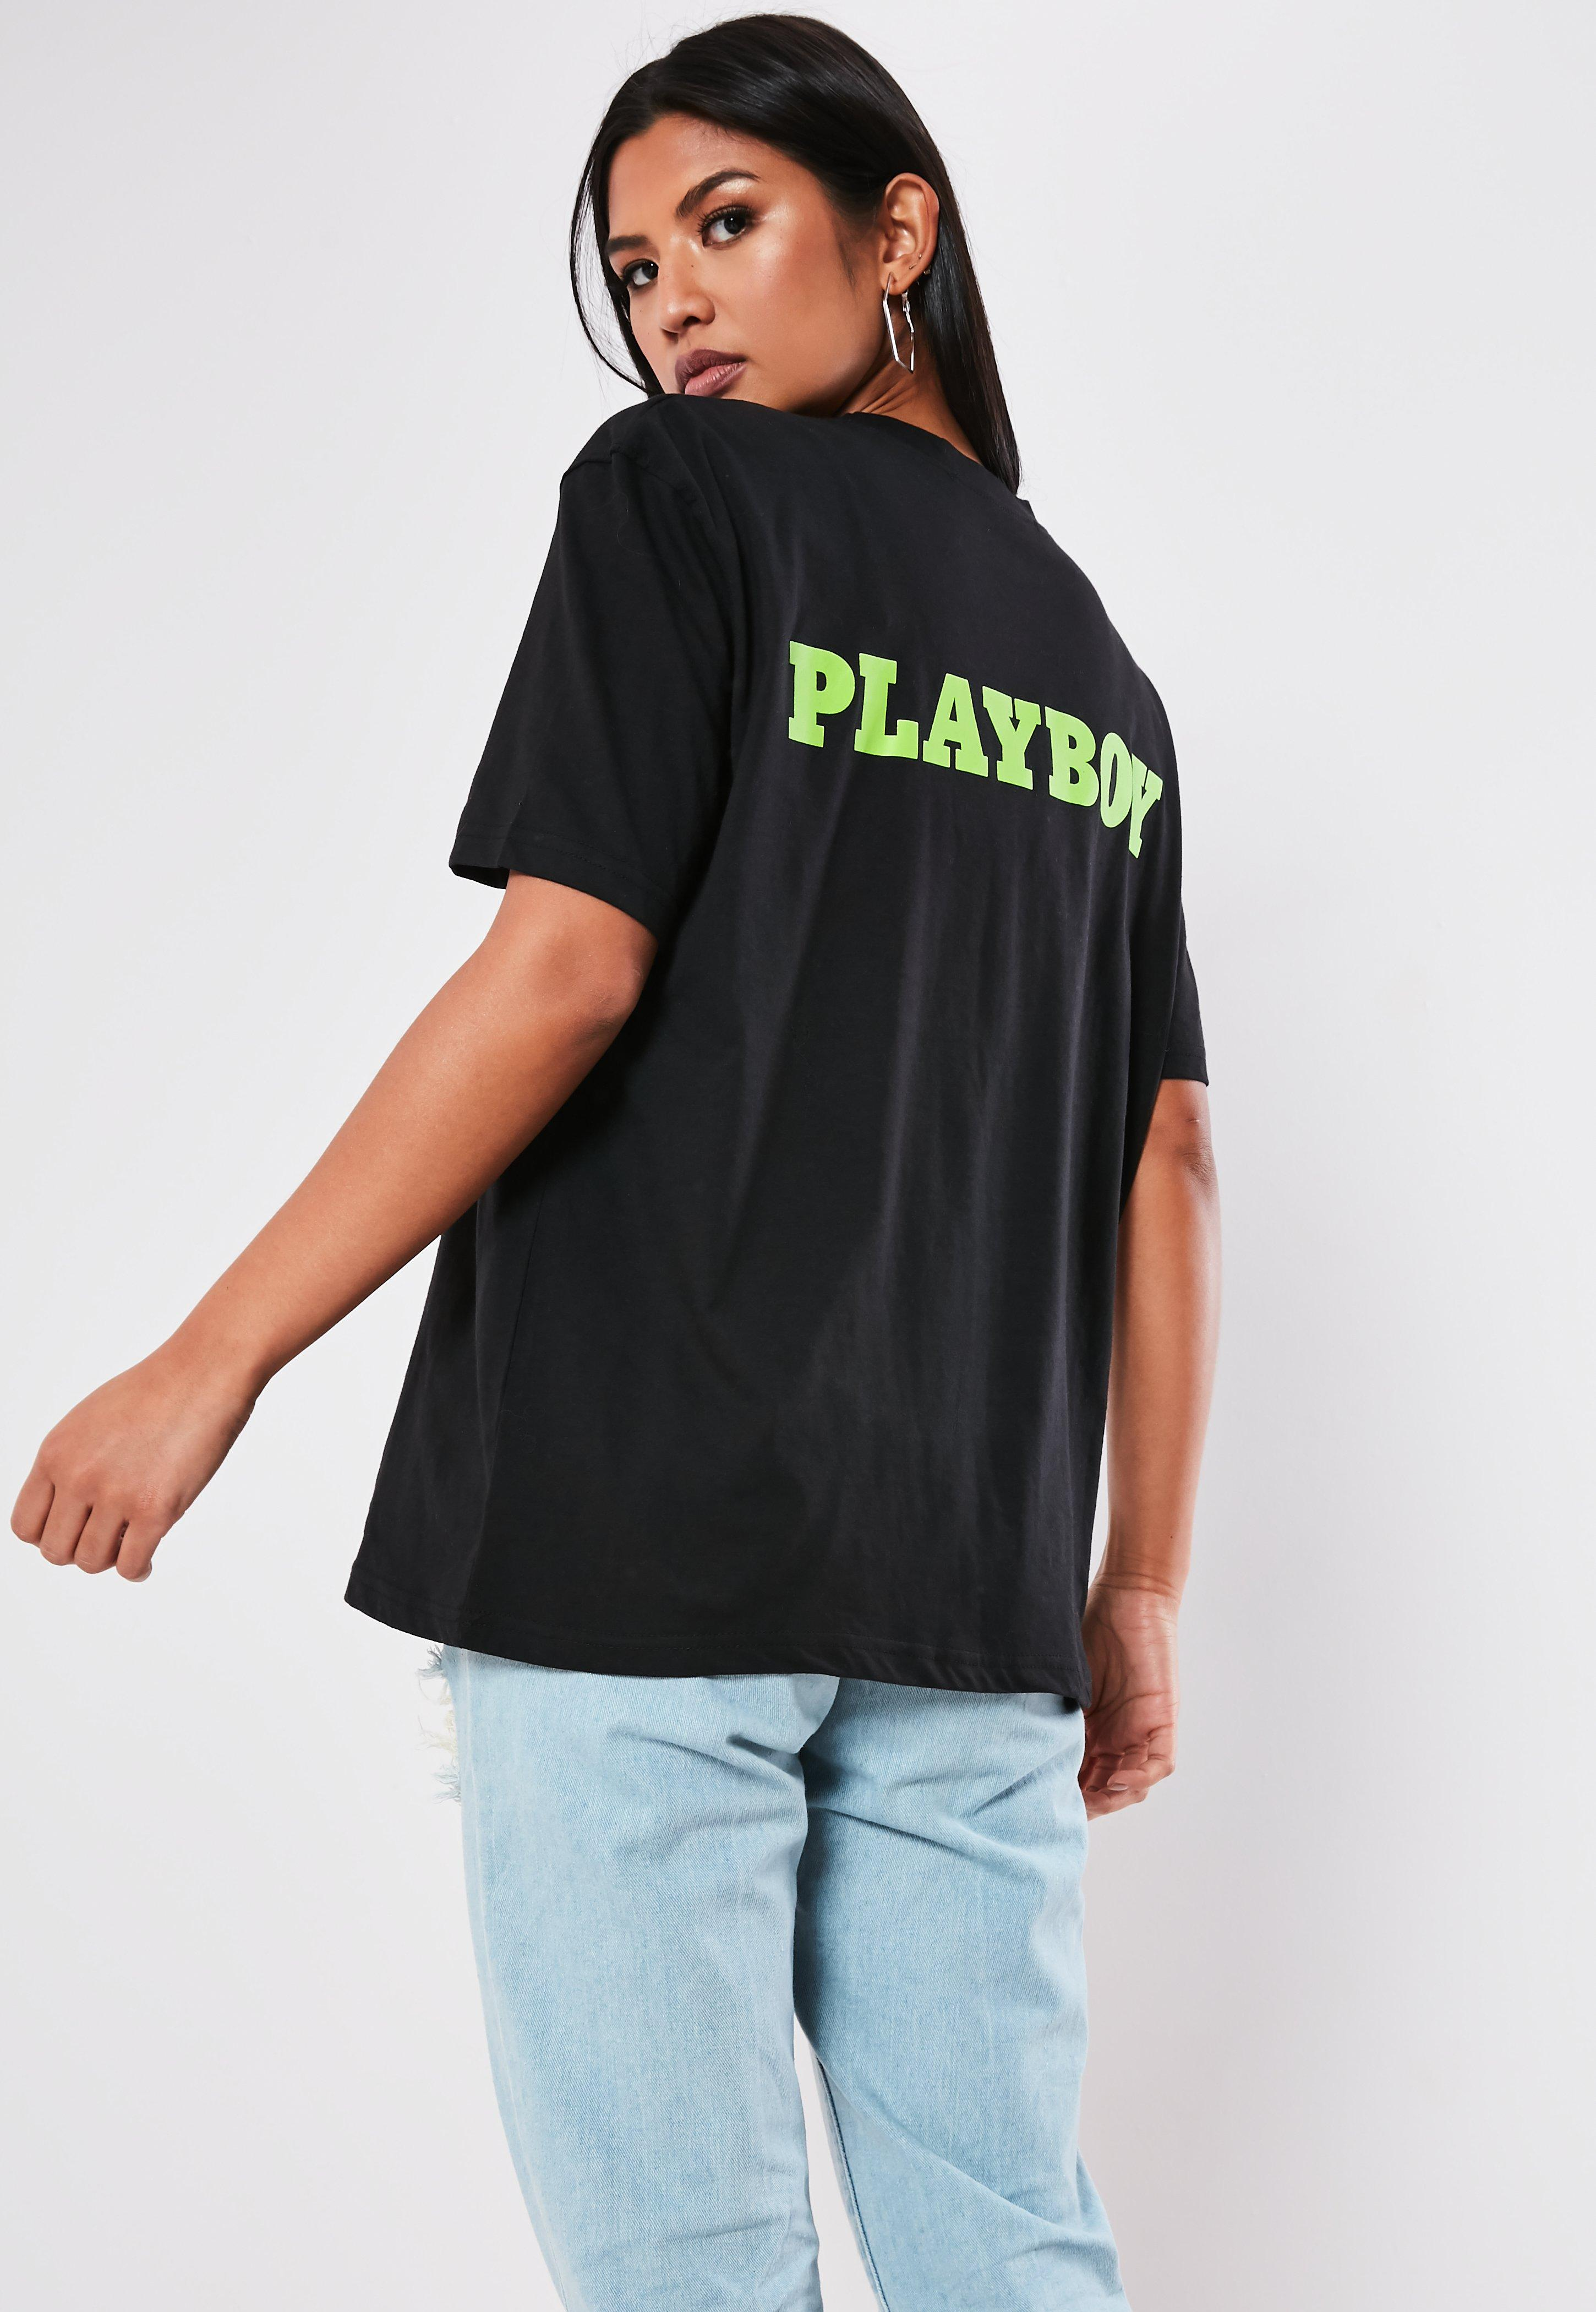 a3e8d232ff6 Playboy Clothing | Playboy T-Shirts, Necklaces & Tracksuits – Missguided